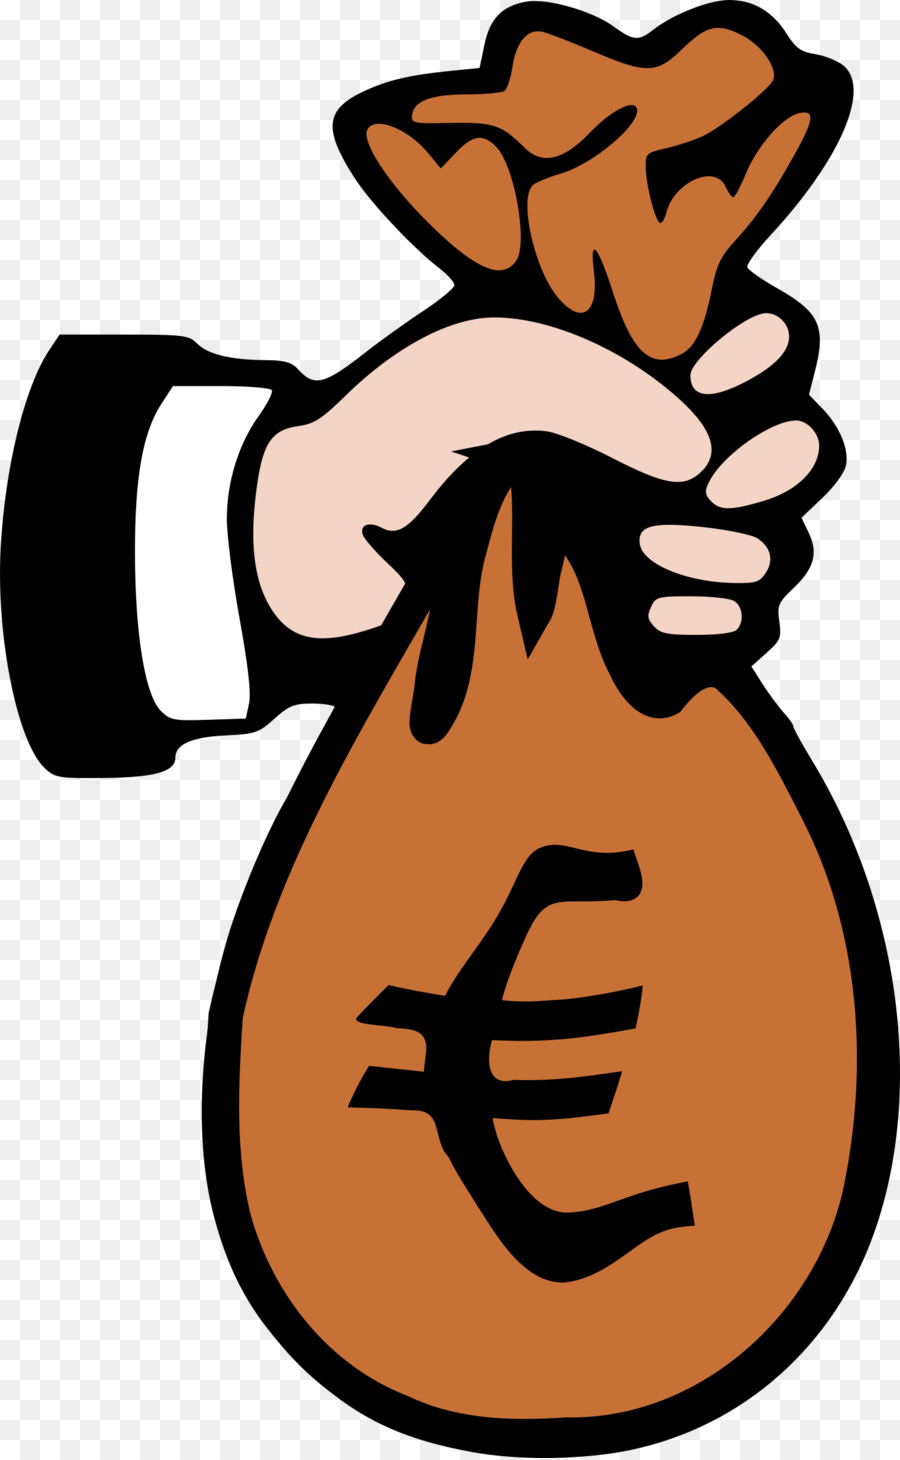 money bag clip art euro png download 1481 2400 free rh kisspng com free clipart money bag